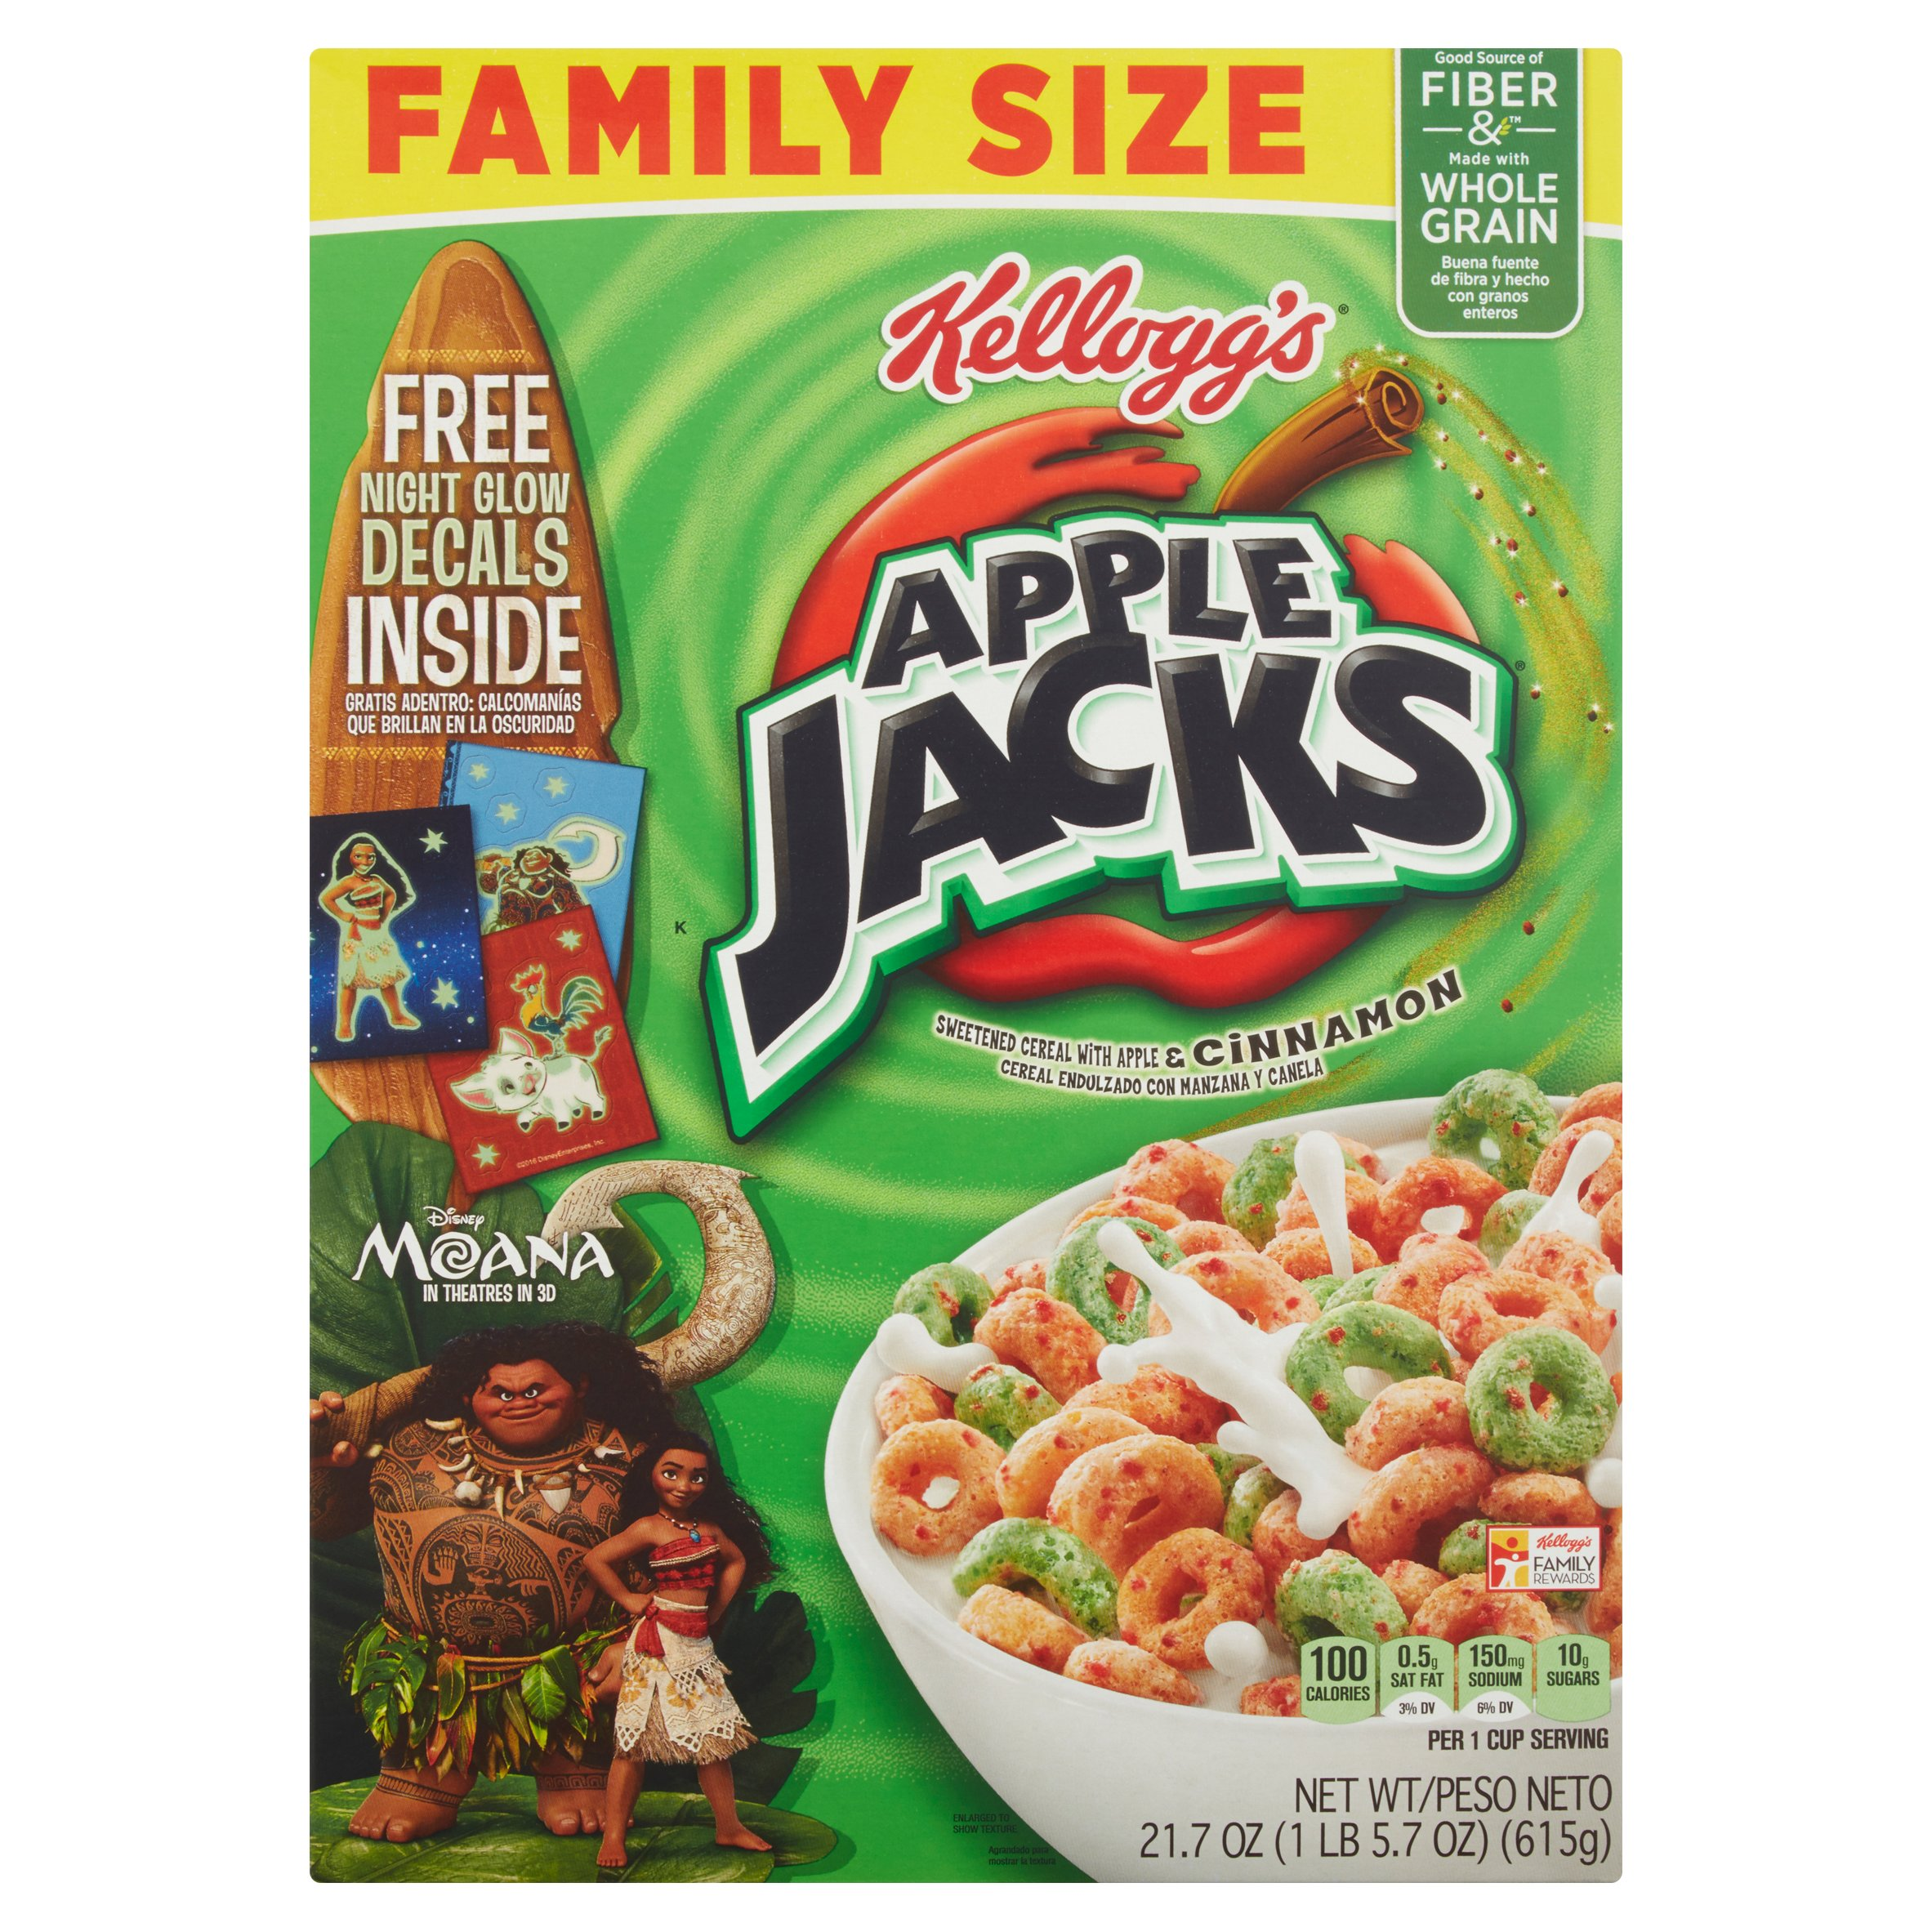 Kellogg's Apple Jacks Cold Cereal, box of 21.7 ounce